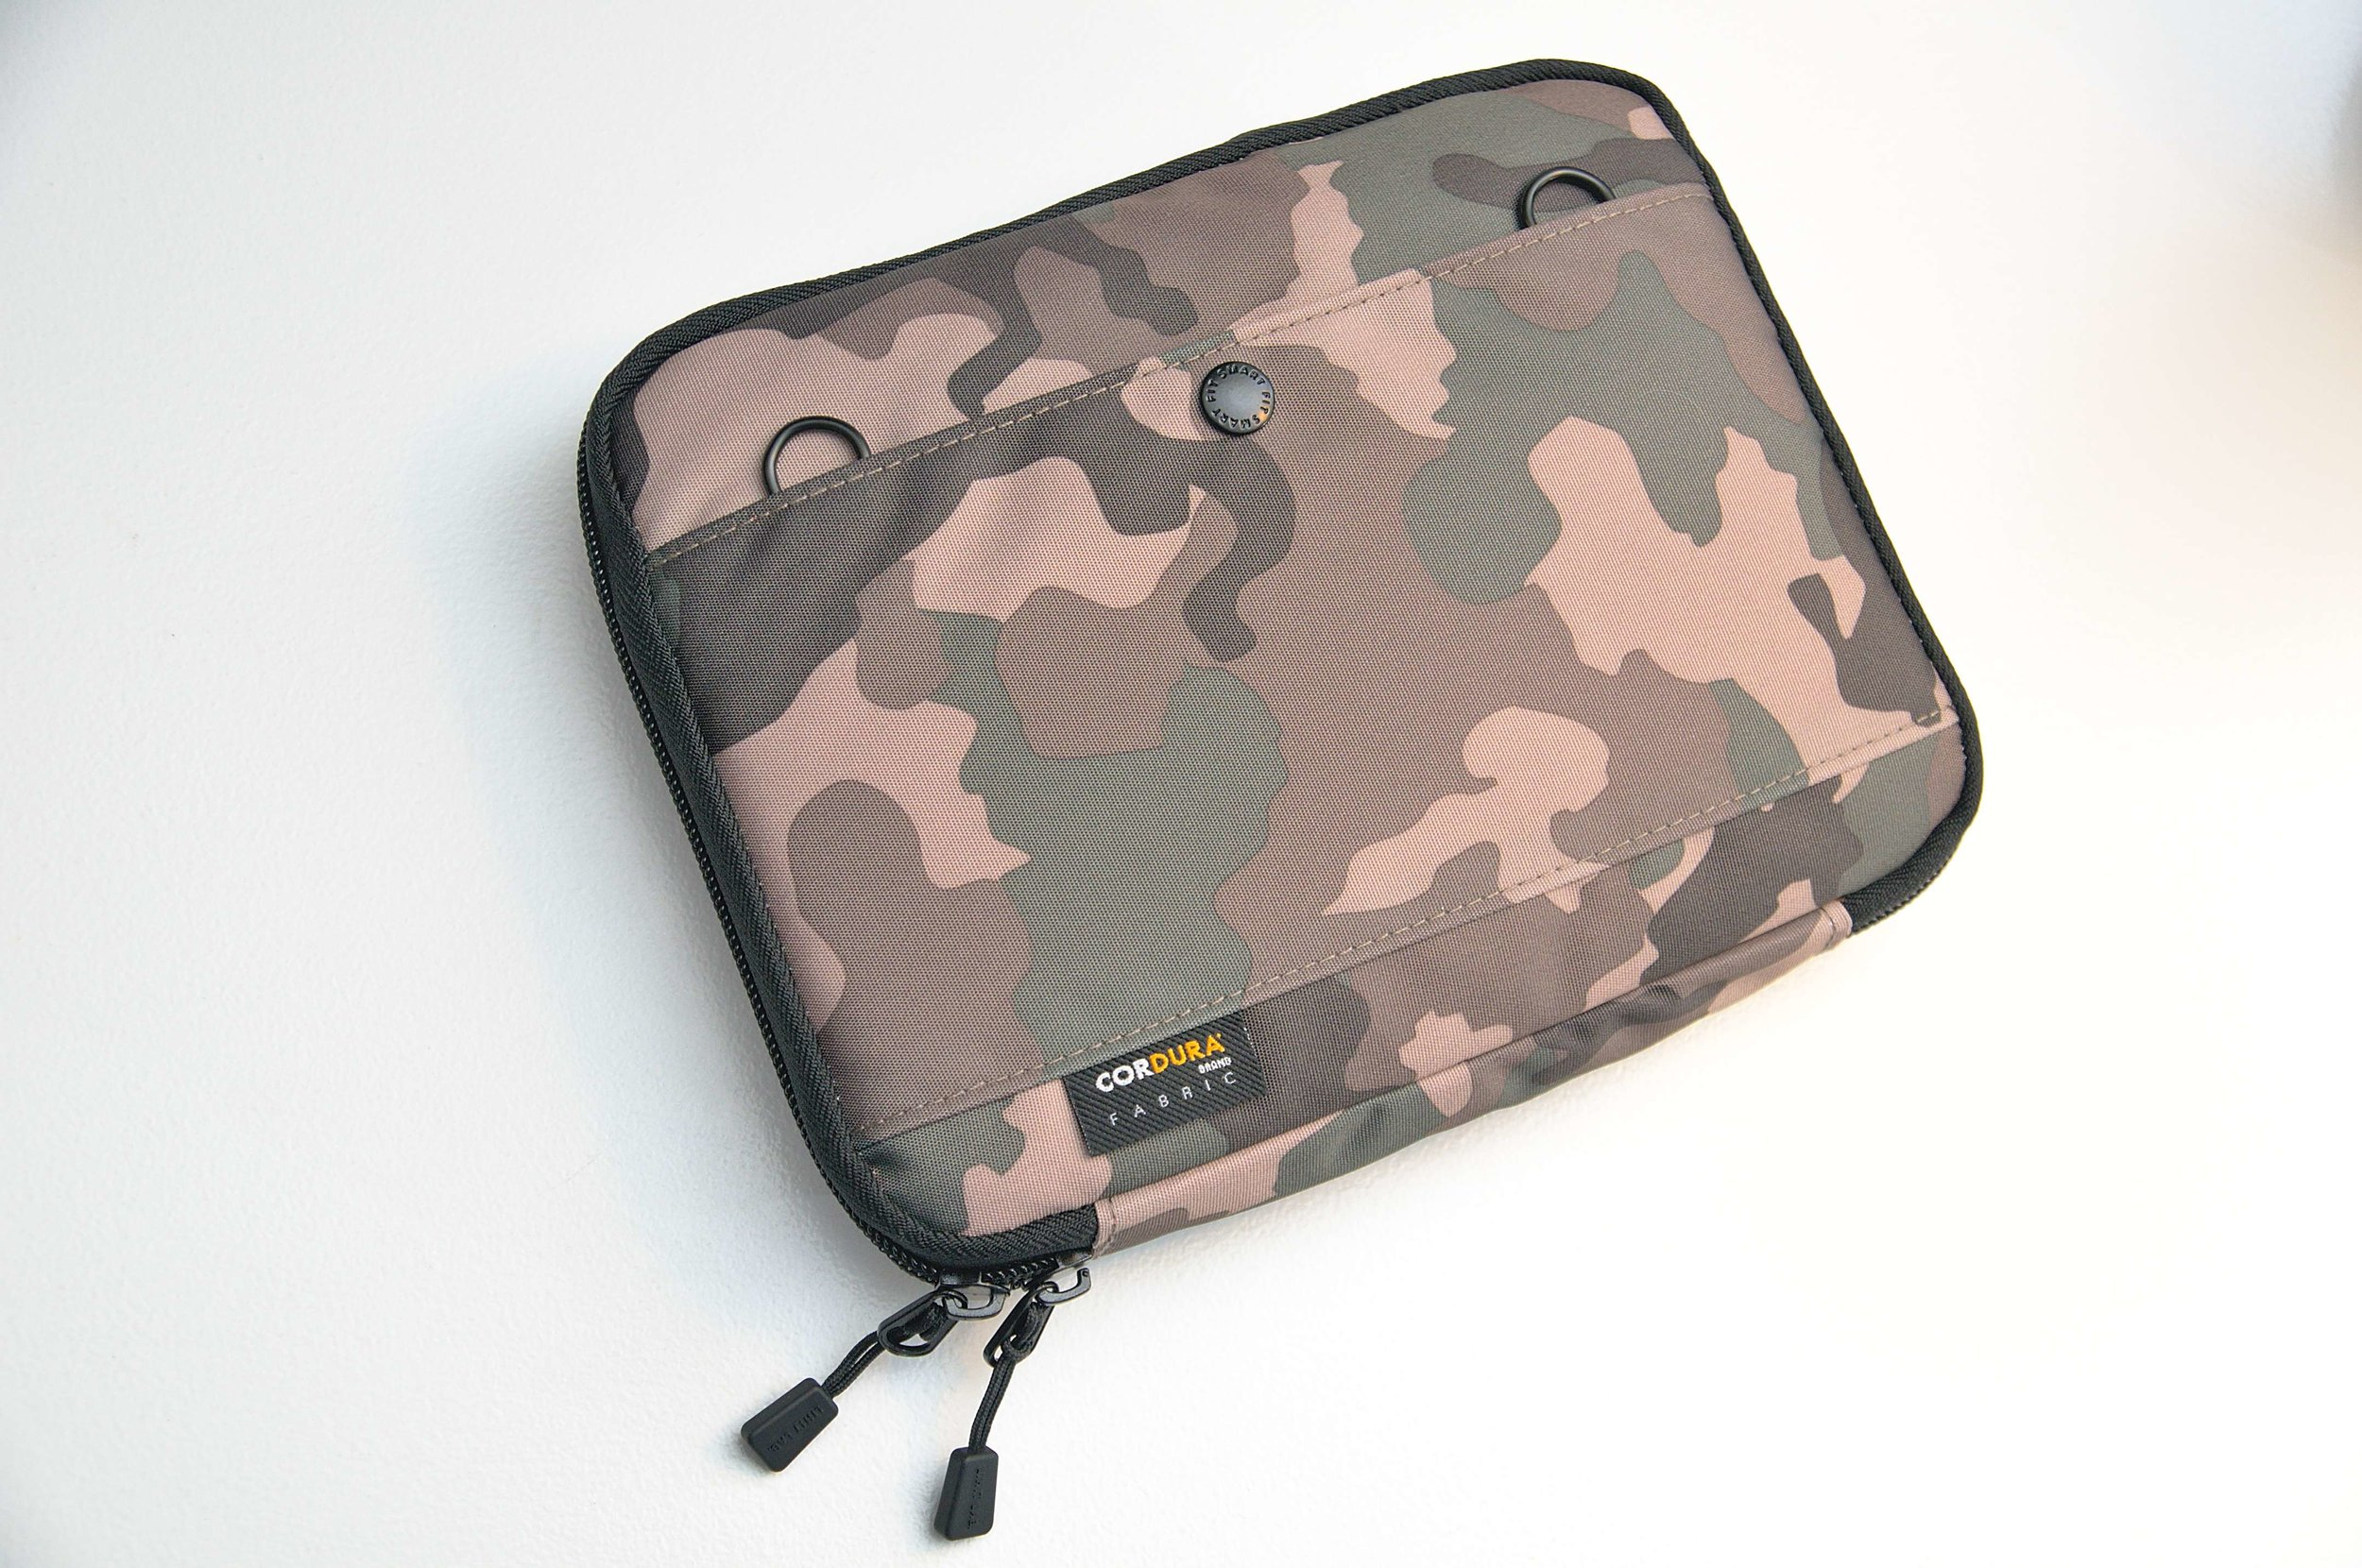 Lihit Lab Smart Fit B6 Carrying Pouch Review